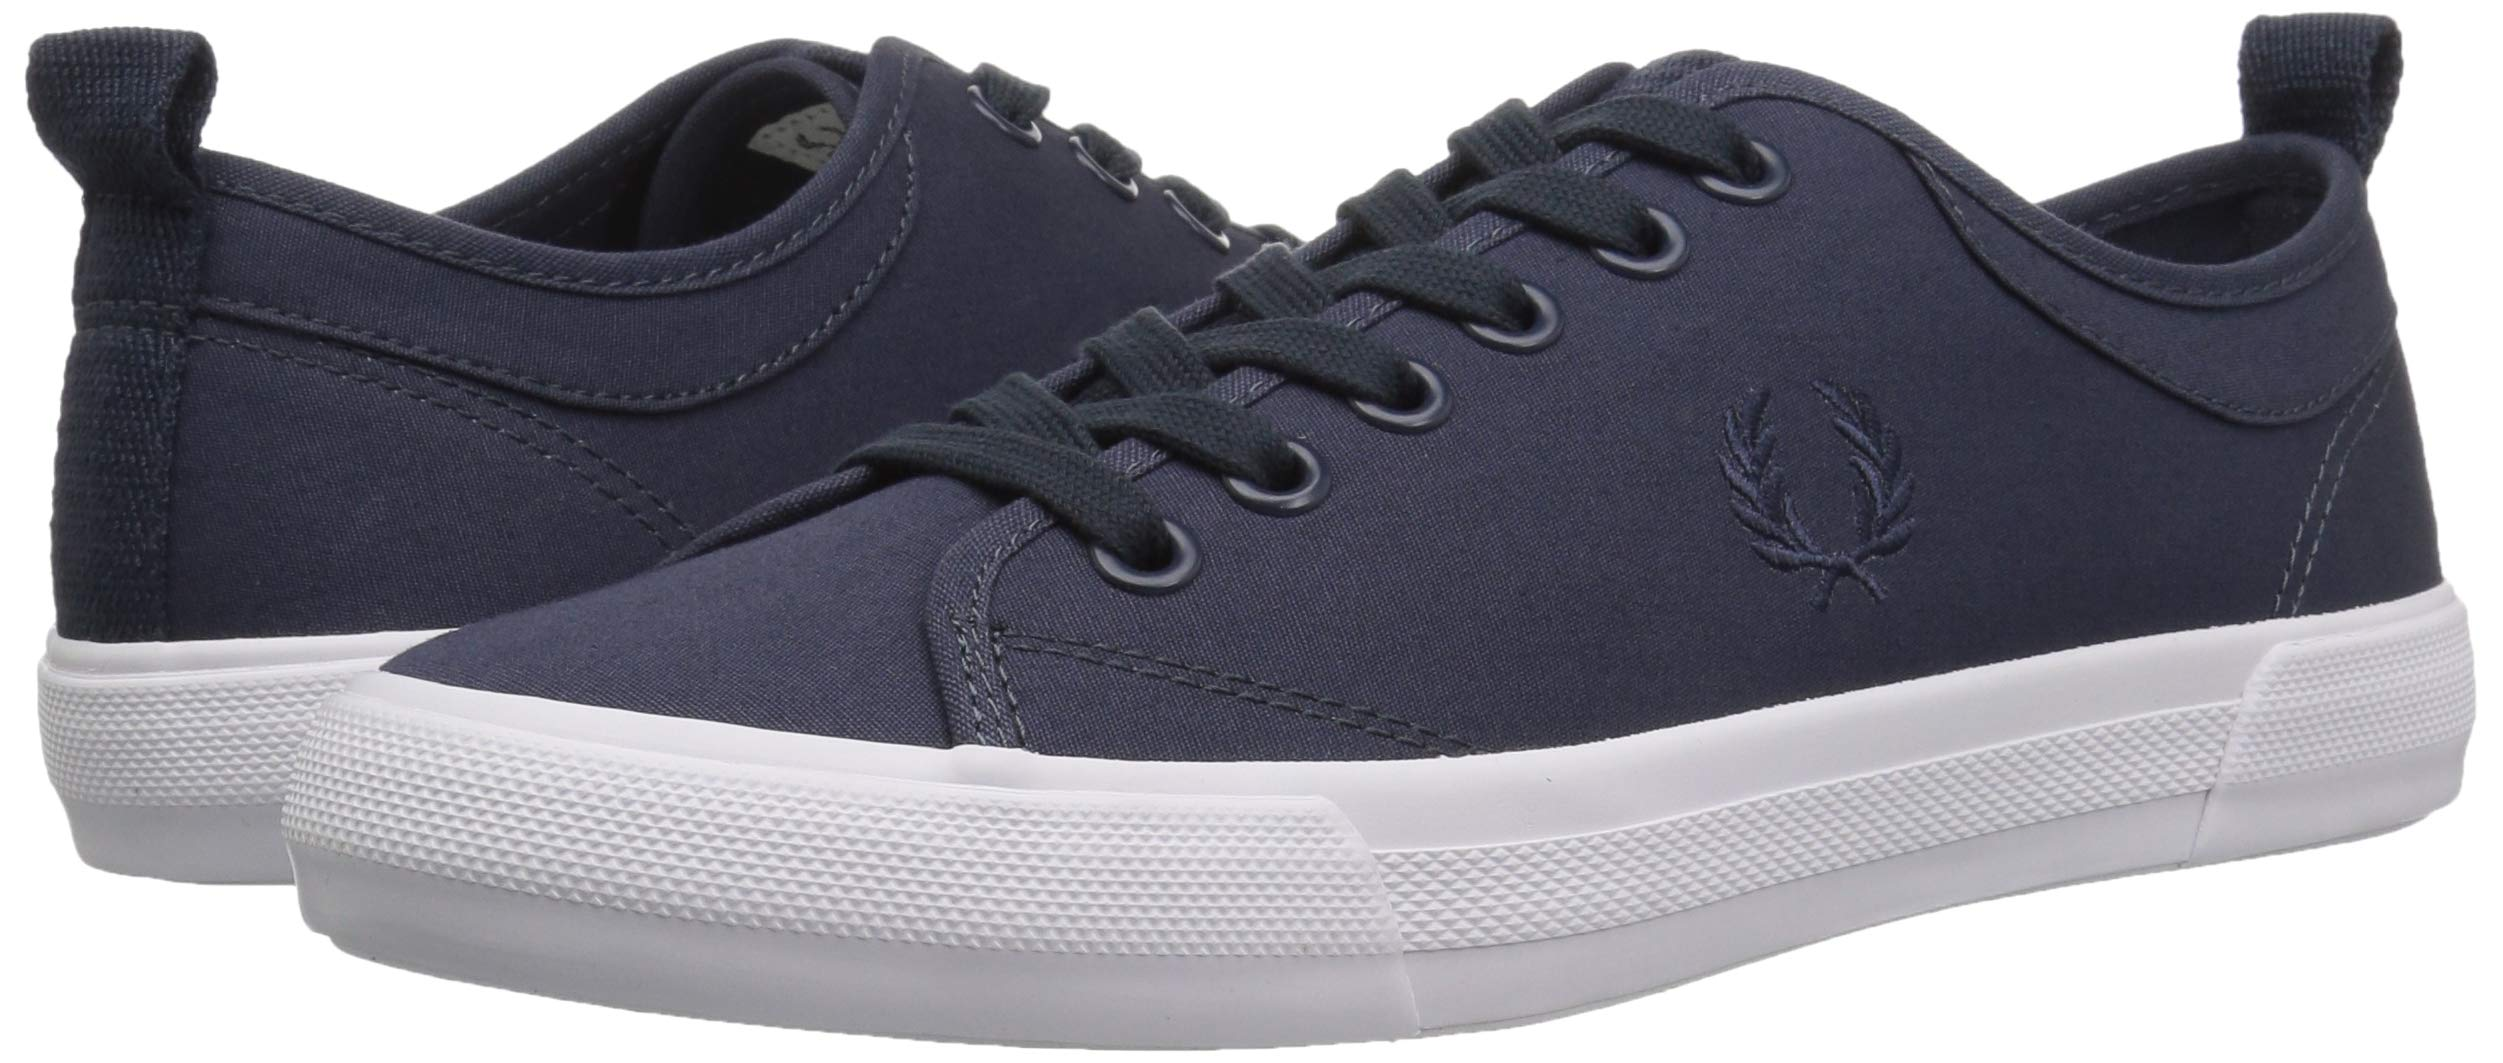 Fred Perry Men's Horton Shower Resist FINE CNV Sneaker, Dark air Force, 6 D UK (7 US) by Fred Perry (Image #5)